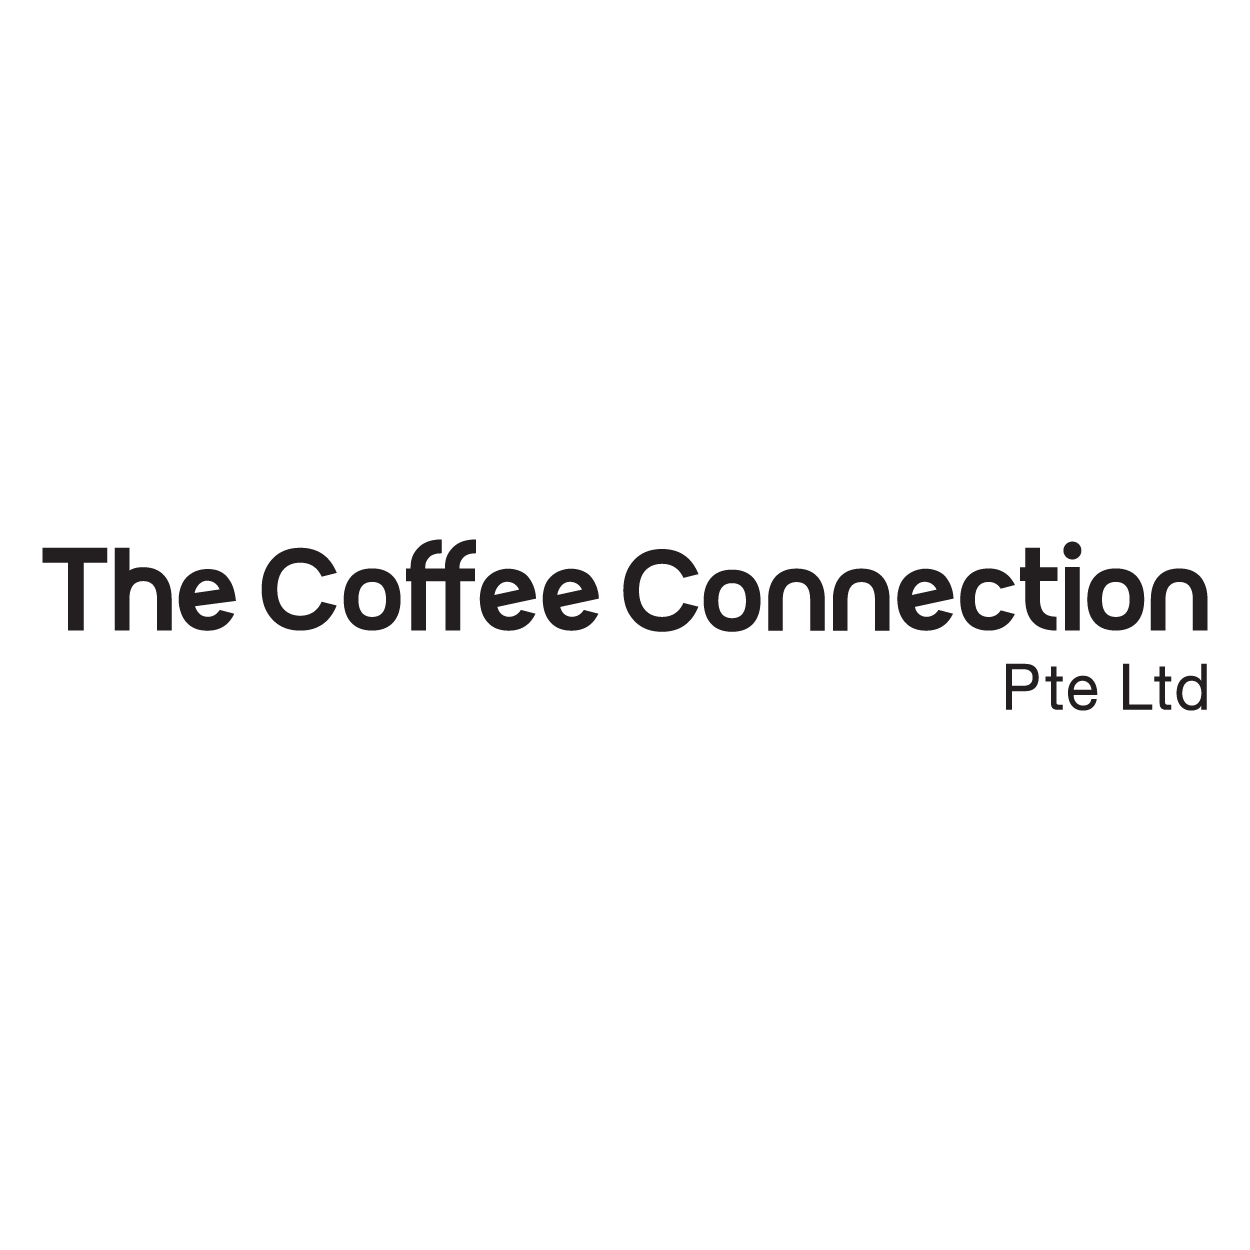 The Coffee Connection Pte Ltd